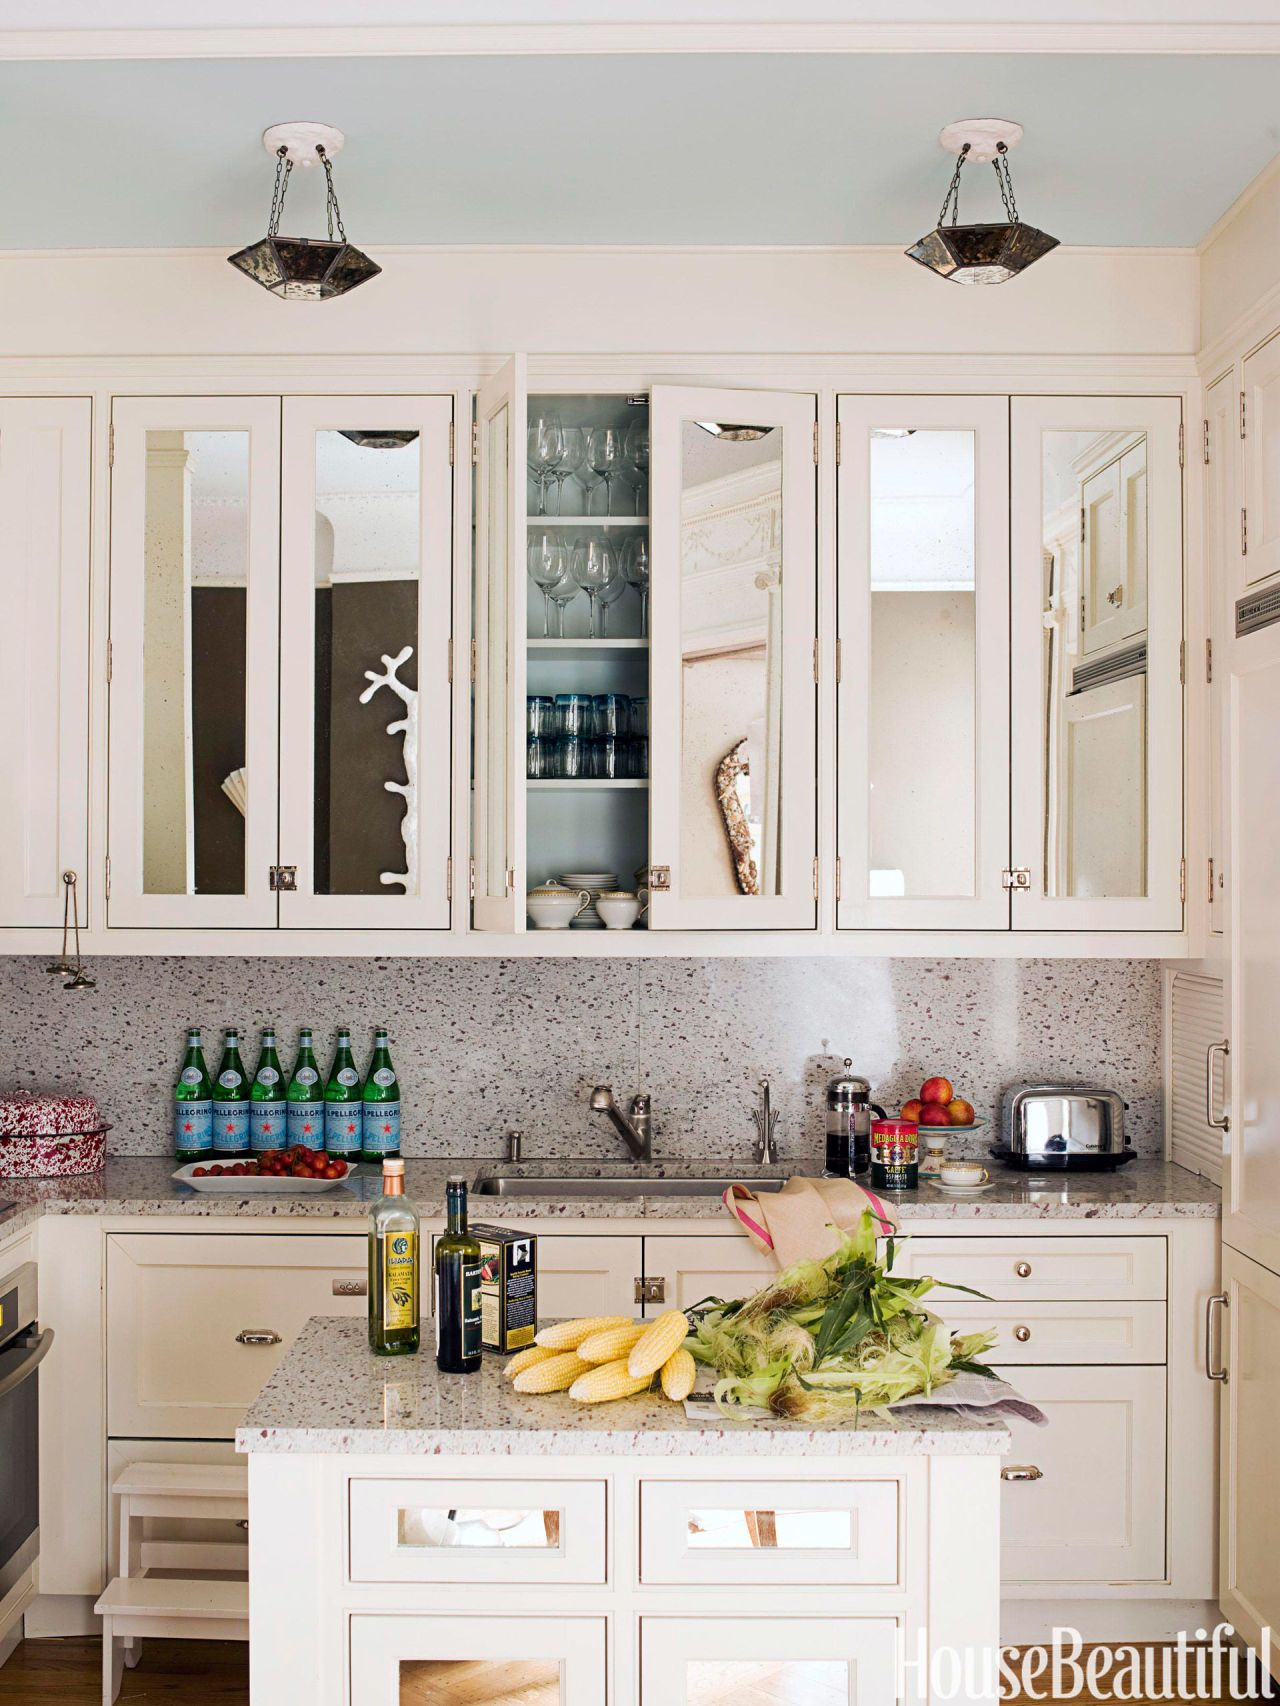 Antiqued Mirrored Glass On Cabinet Doors Enlarges The Small Kitchen